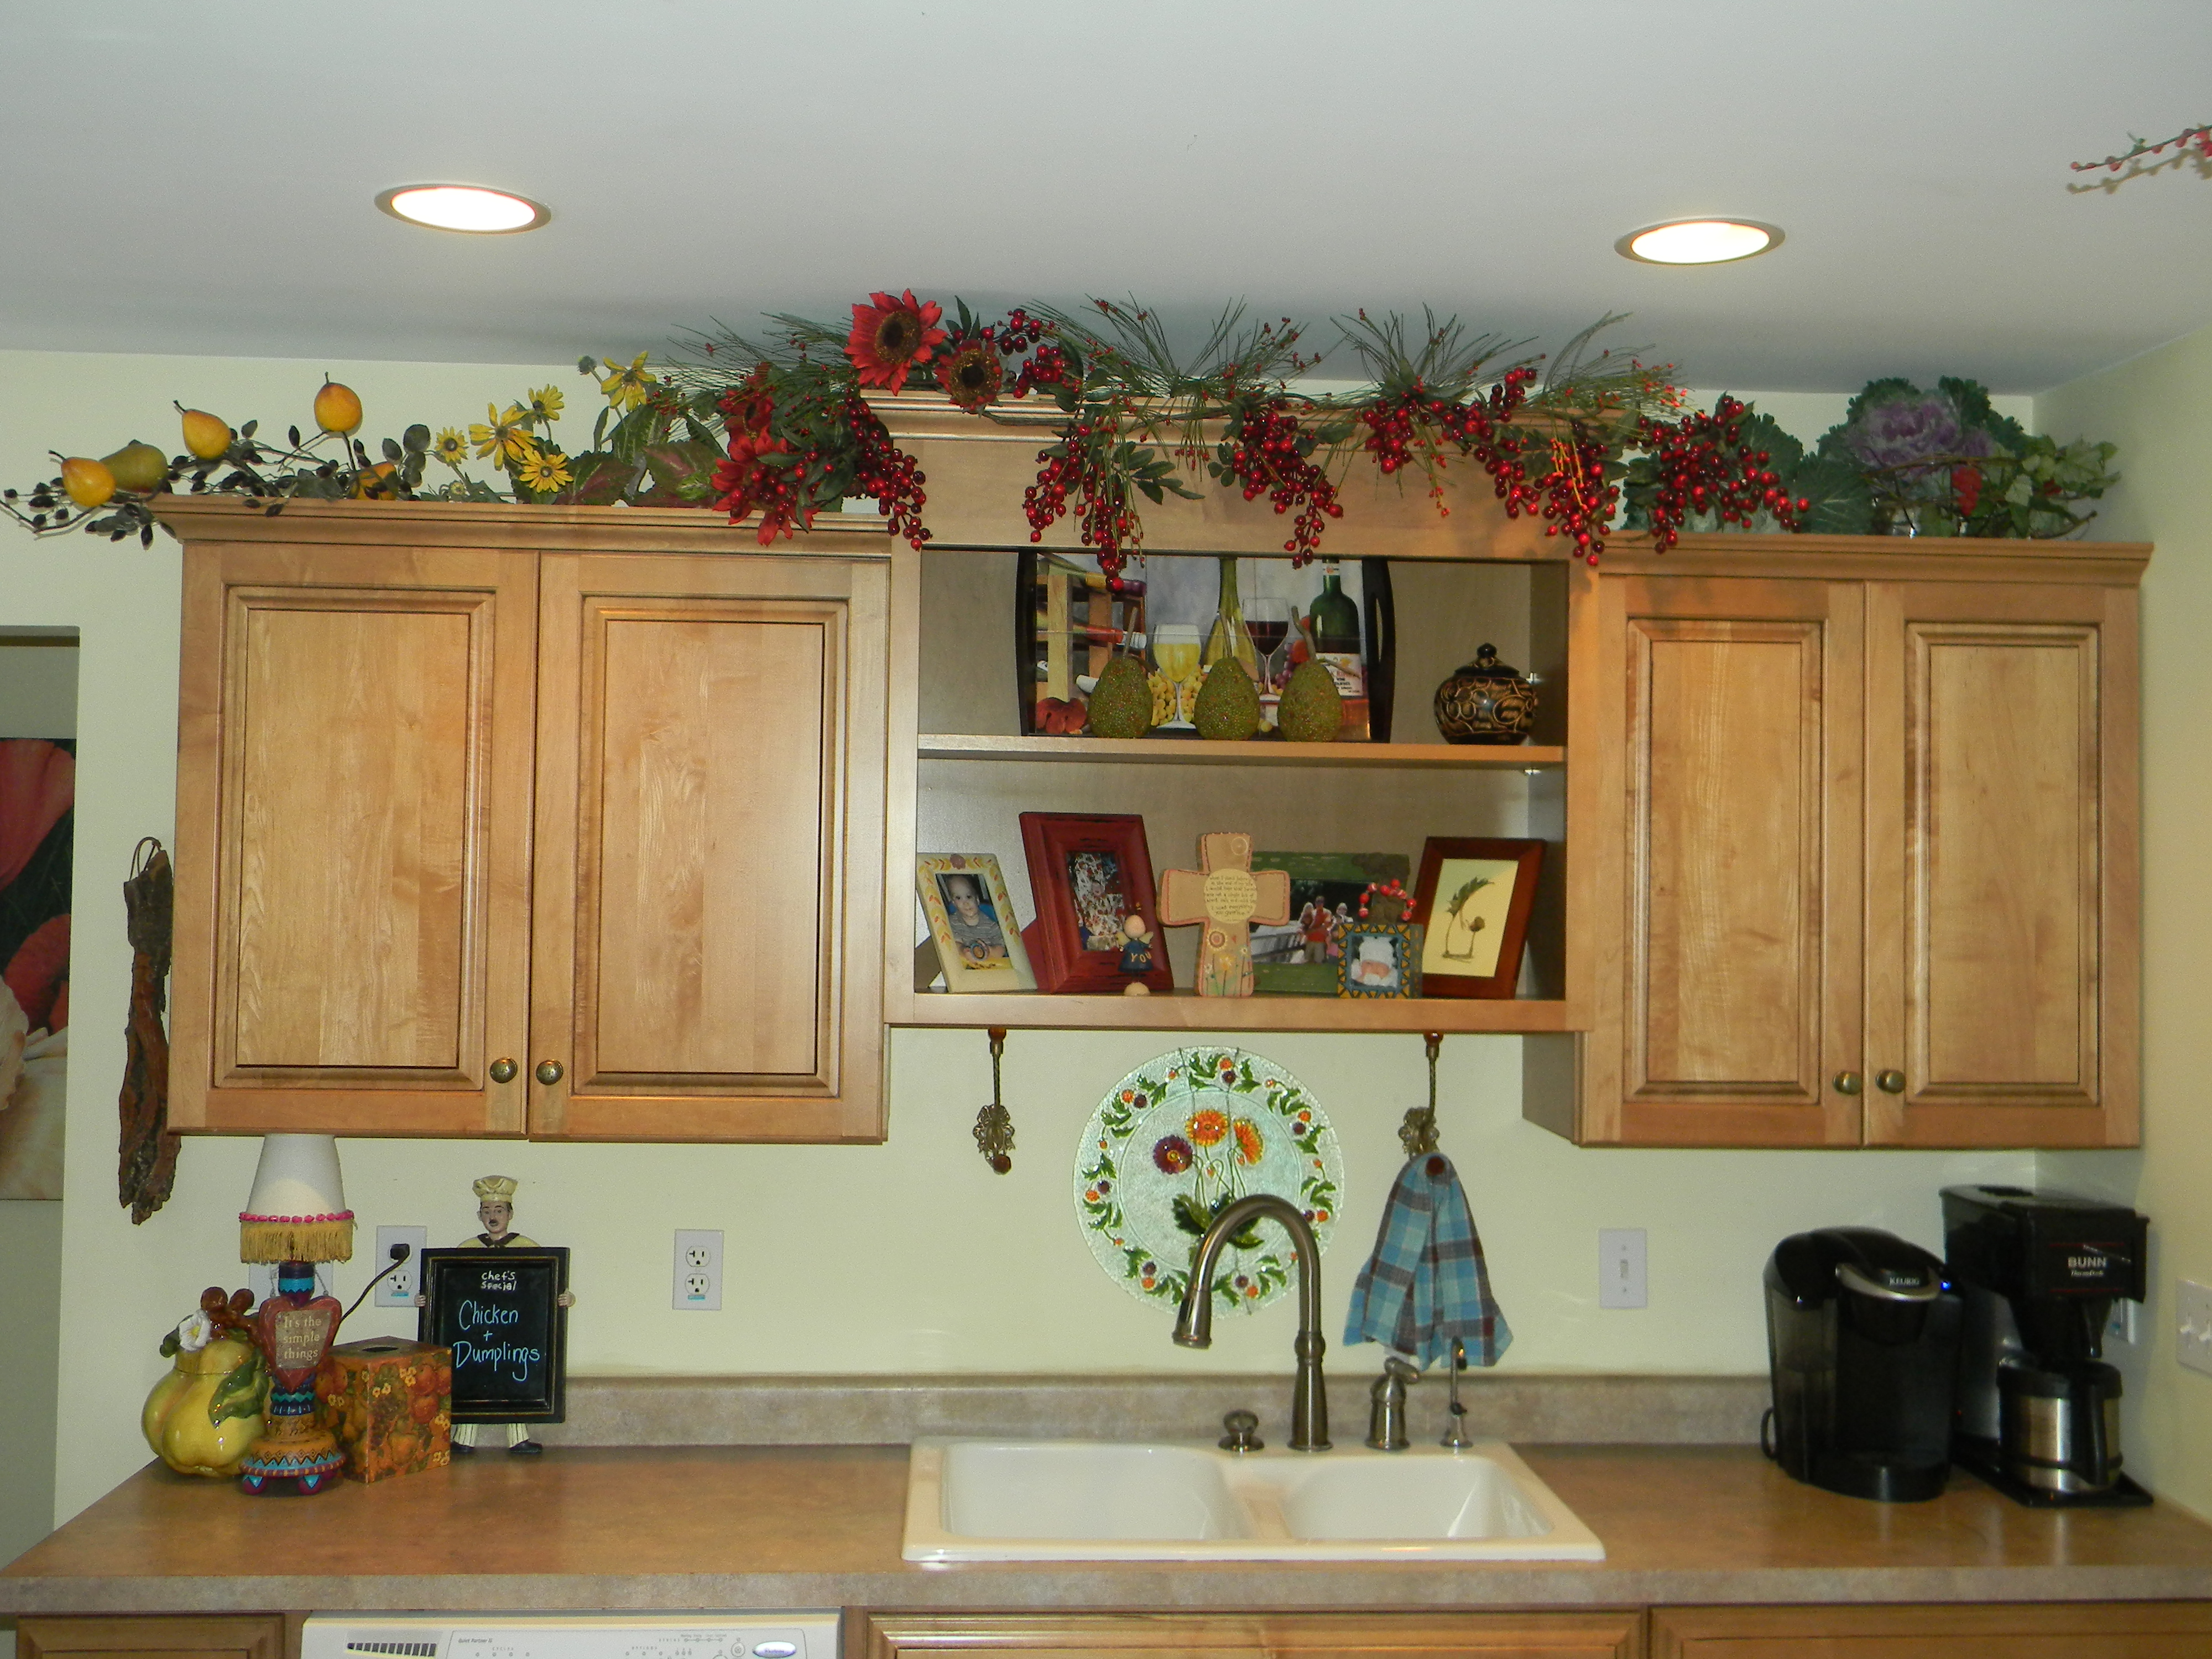 Decorating Above Kitchen Cabinets Before And After Pictures And Tips Joyful Daisy